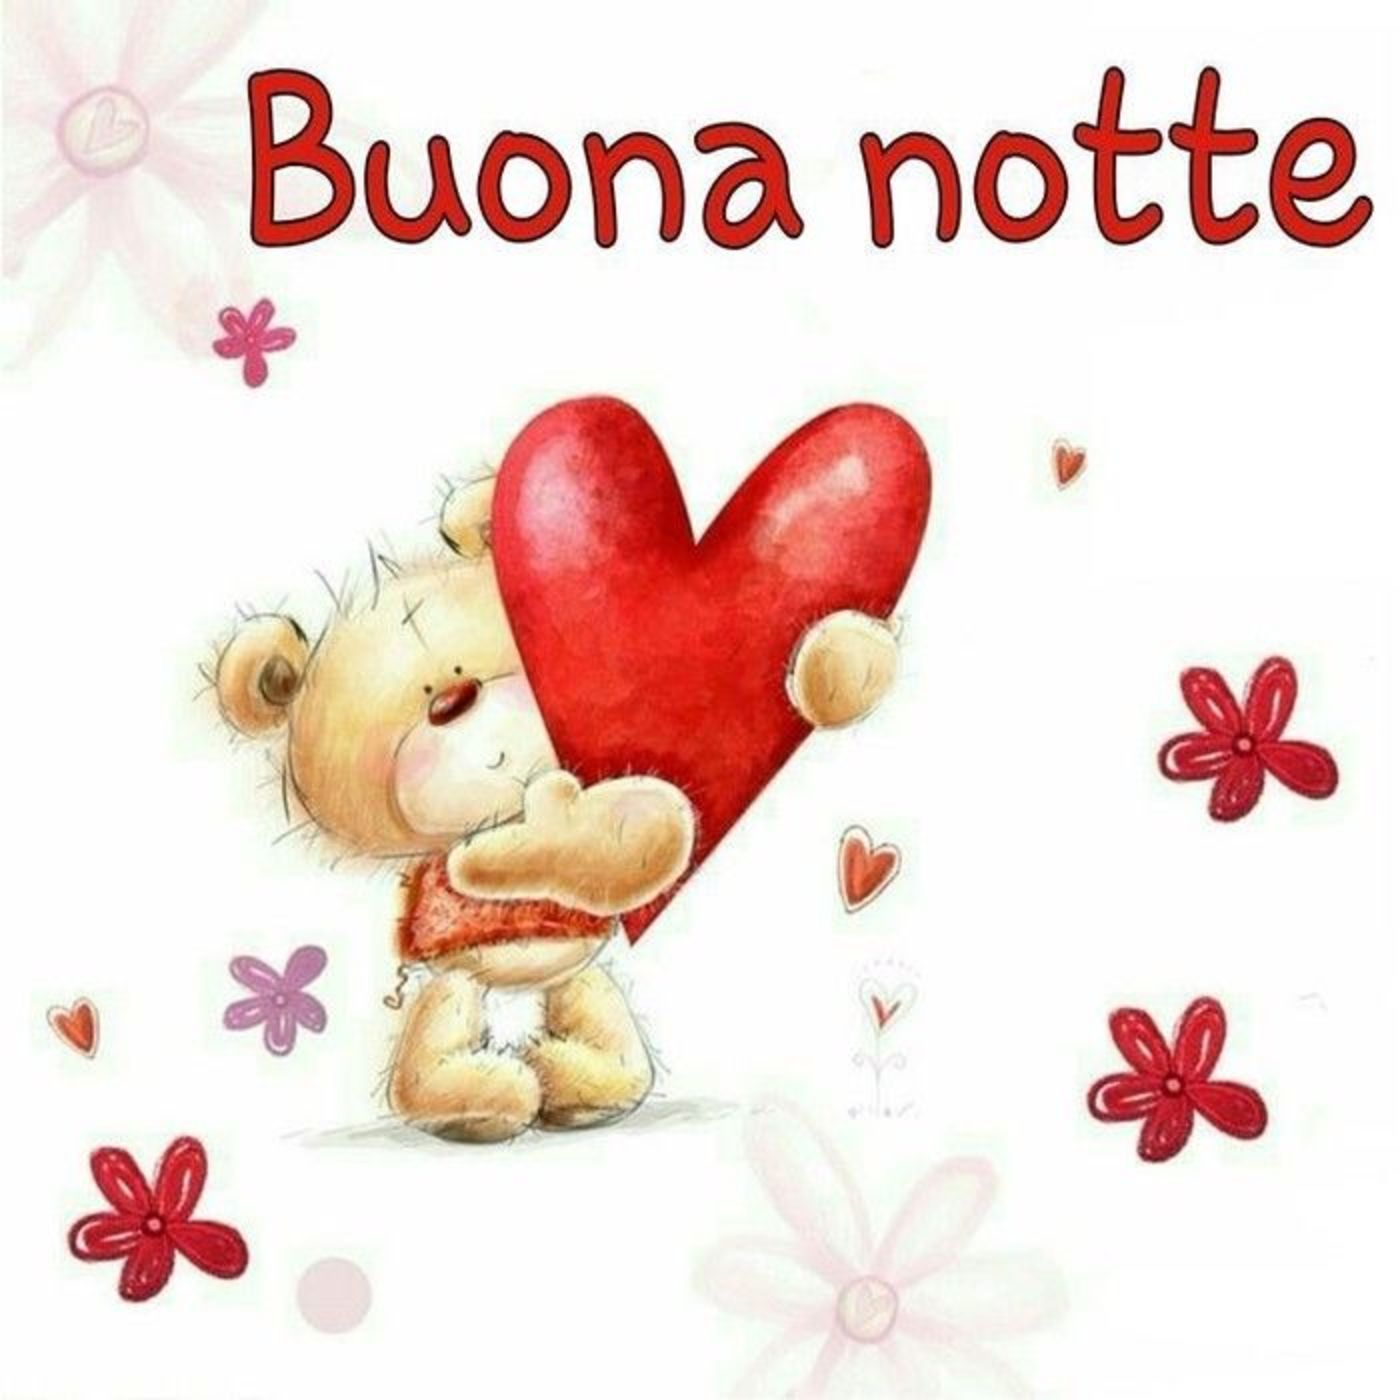 notte amore